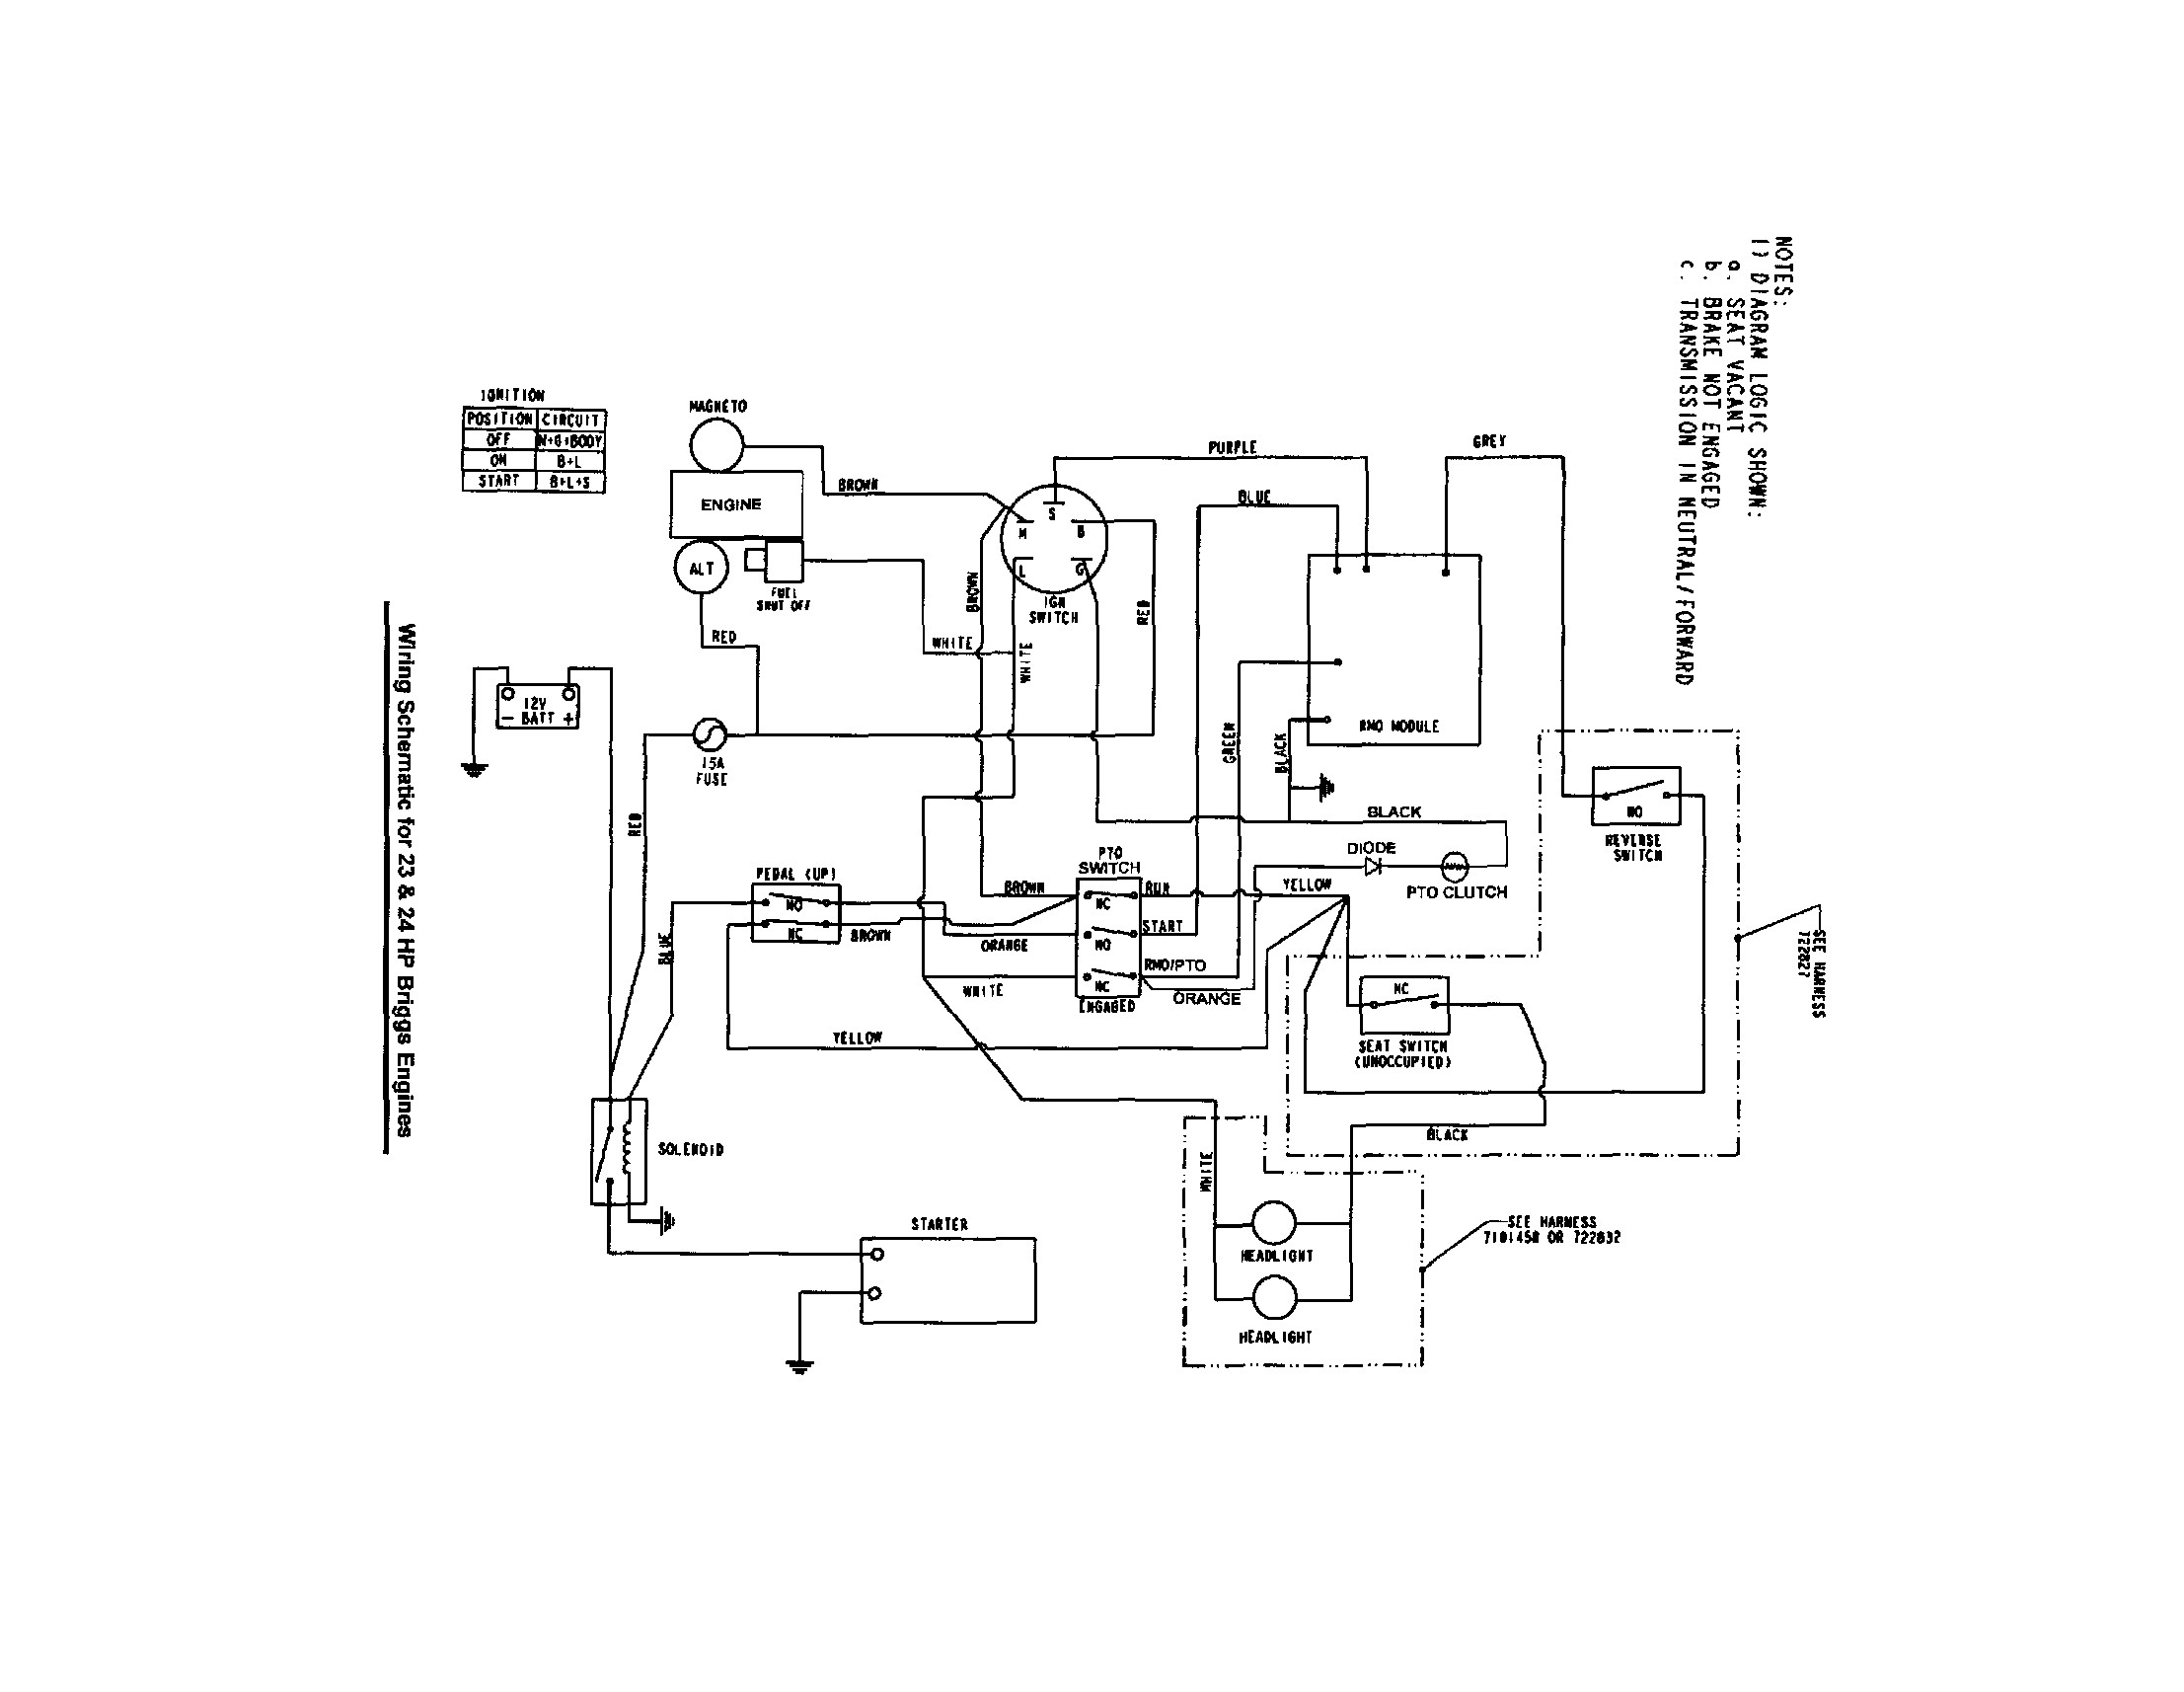 Wiring Diagram for A Craftsman Riding Mower Magnificent Craftsman Gt6000 Wiring Diagram Ideas Simple Wiring Of Wiring Diagram for A Craftsman Riding Mower